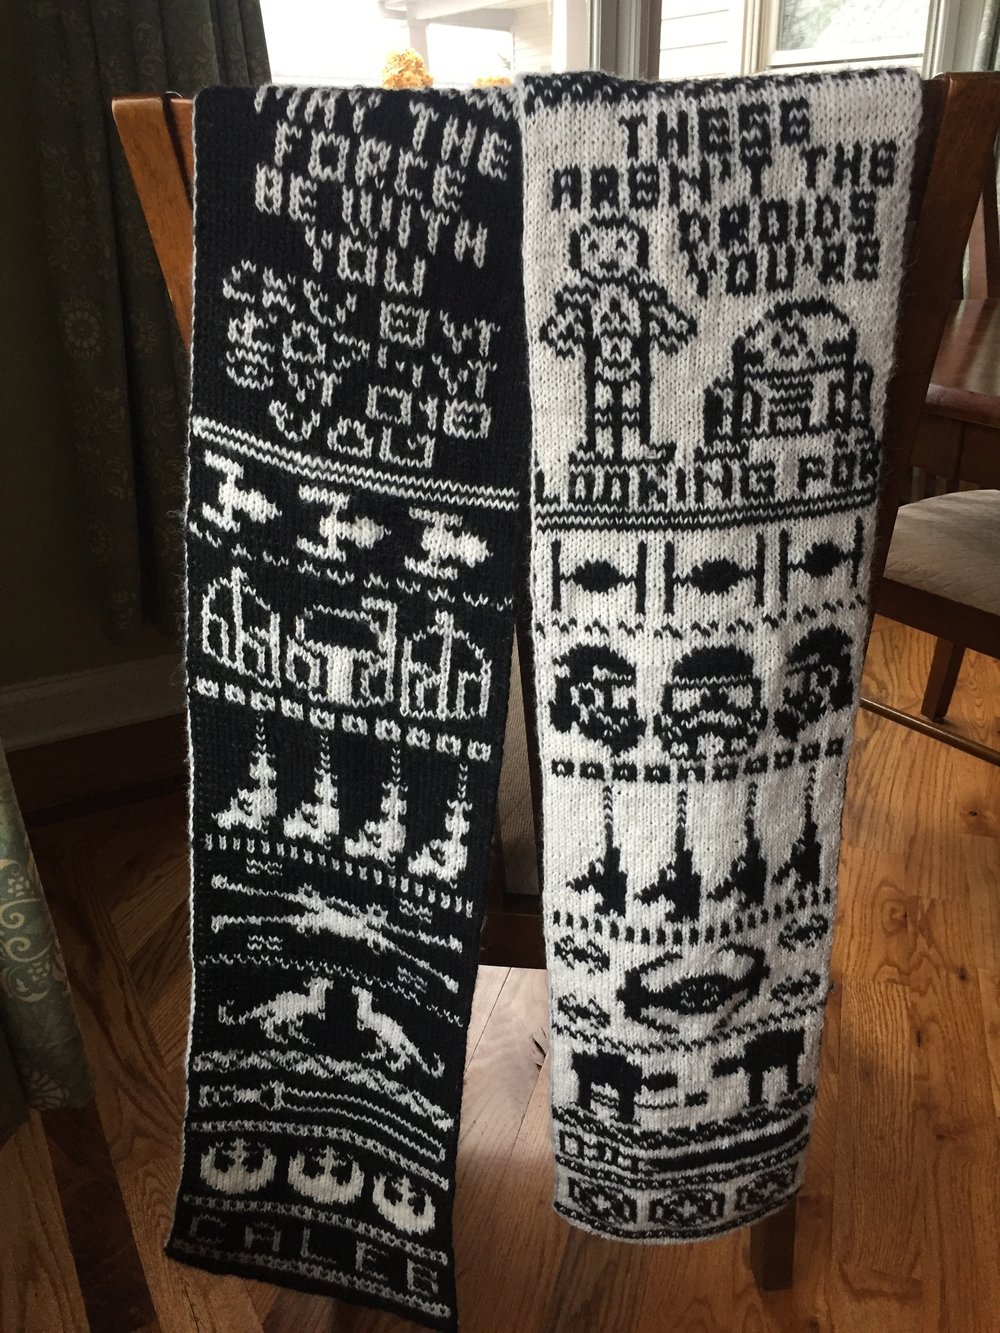 Stashmuffins loosethreads blog laura ricketts designs this is the star wars double knit scarf on ravelry by jessica goddard she knit the scarf and has the charts on the link but doesnt teach how to do double nvjuhfo Images